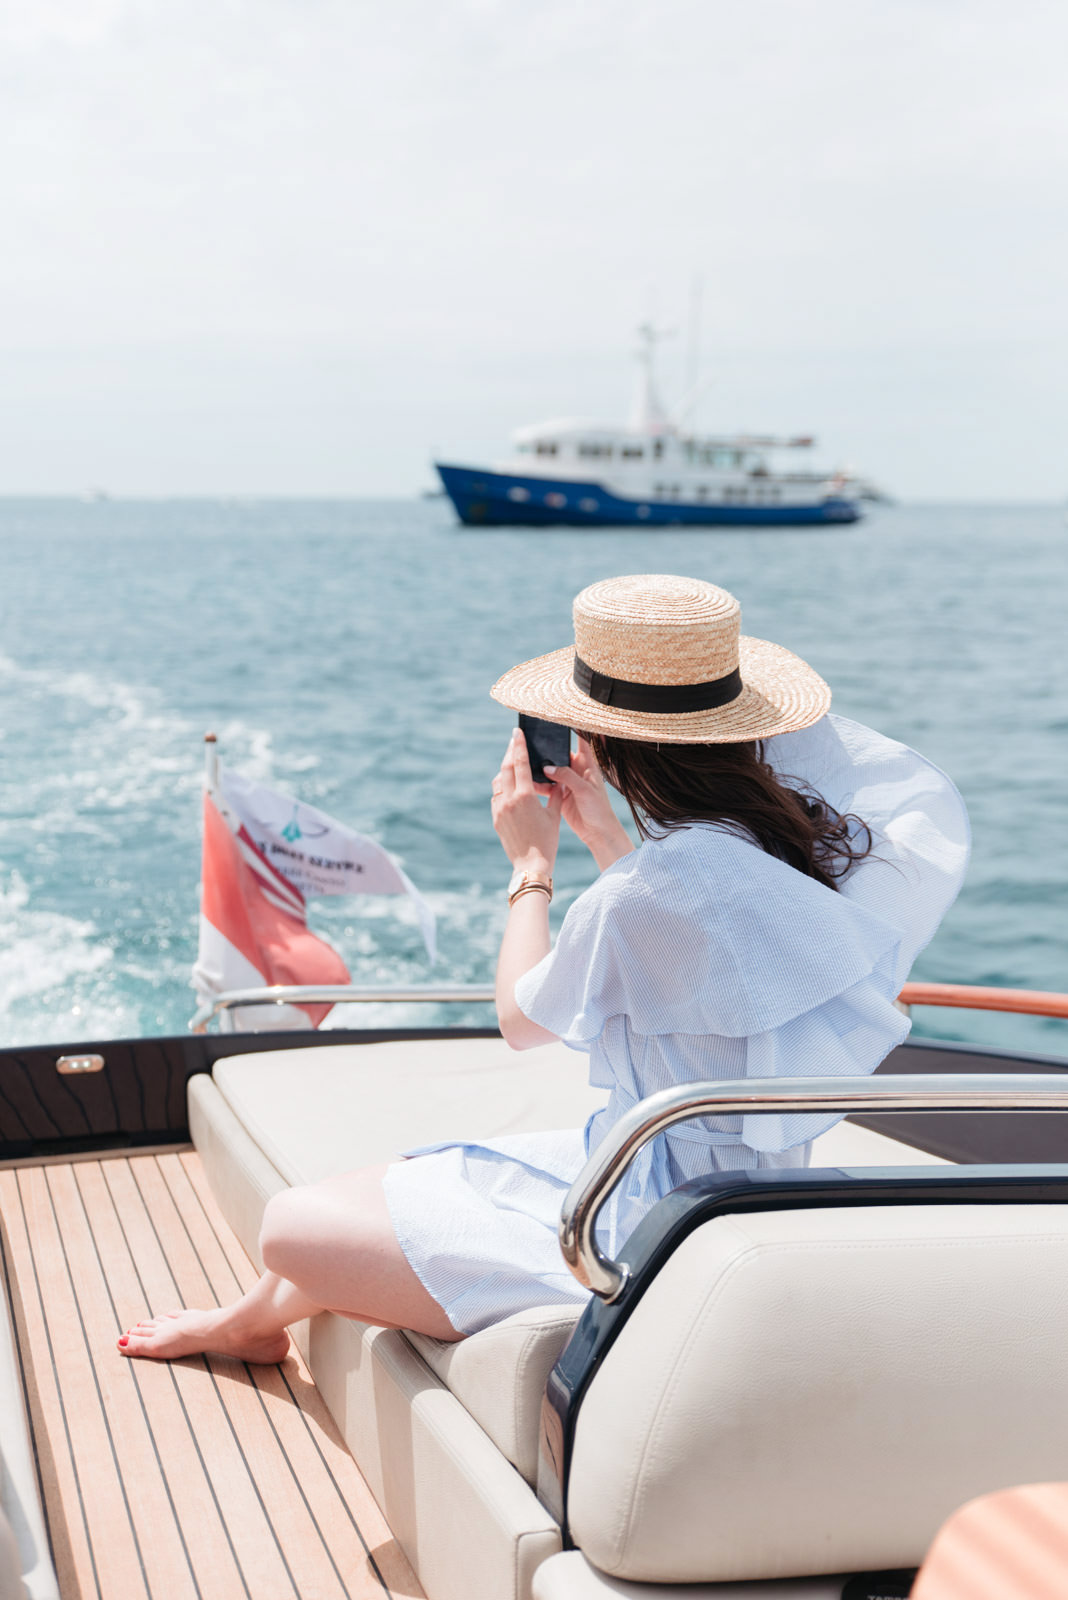 Blog-Mode-And-The-City-Lifestyle-cannes-Mastercard-41